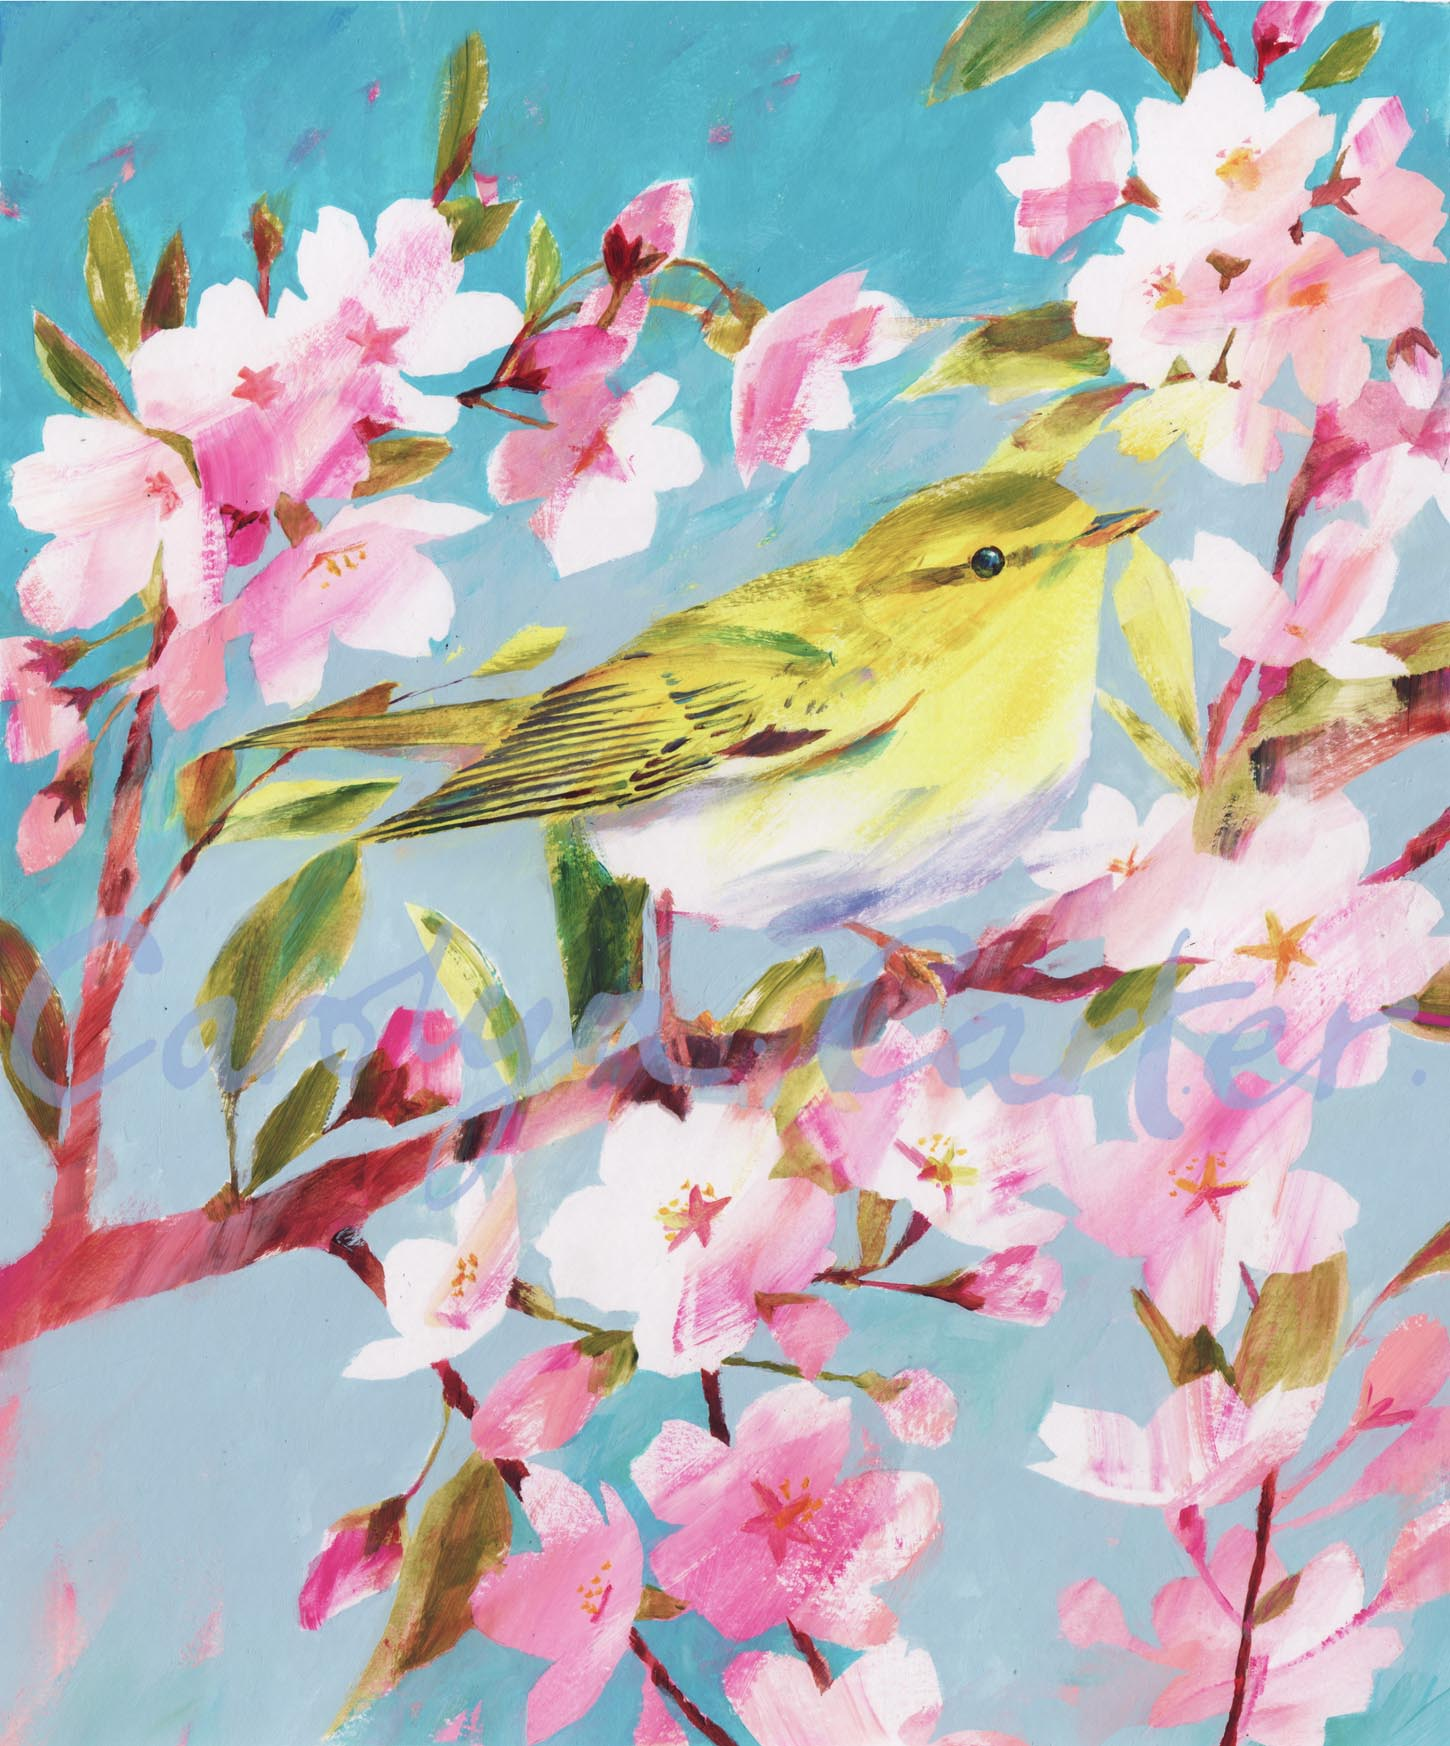 Wood Warbler by Carolyn Carter